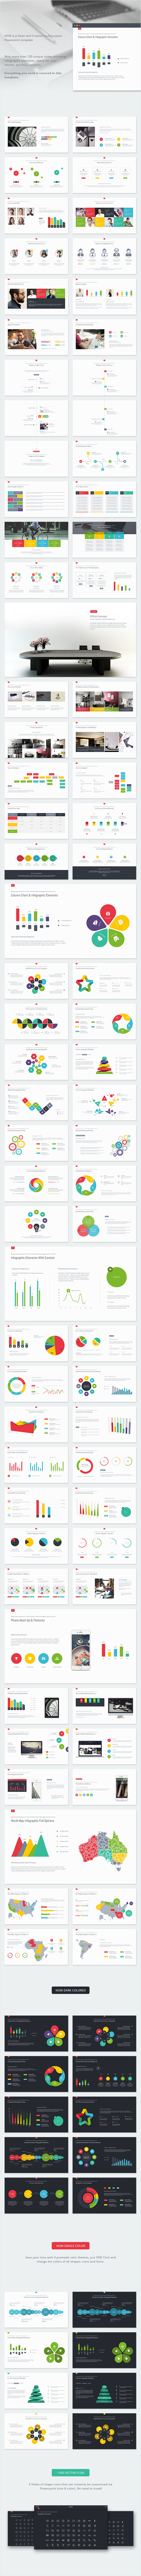 IKON - Multipurpose Presentation Template